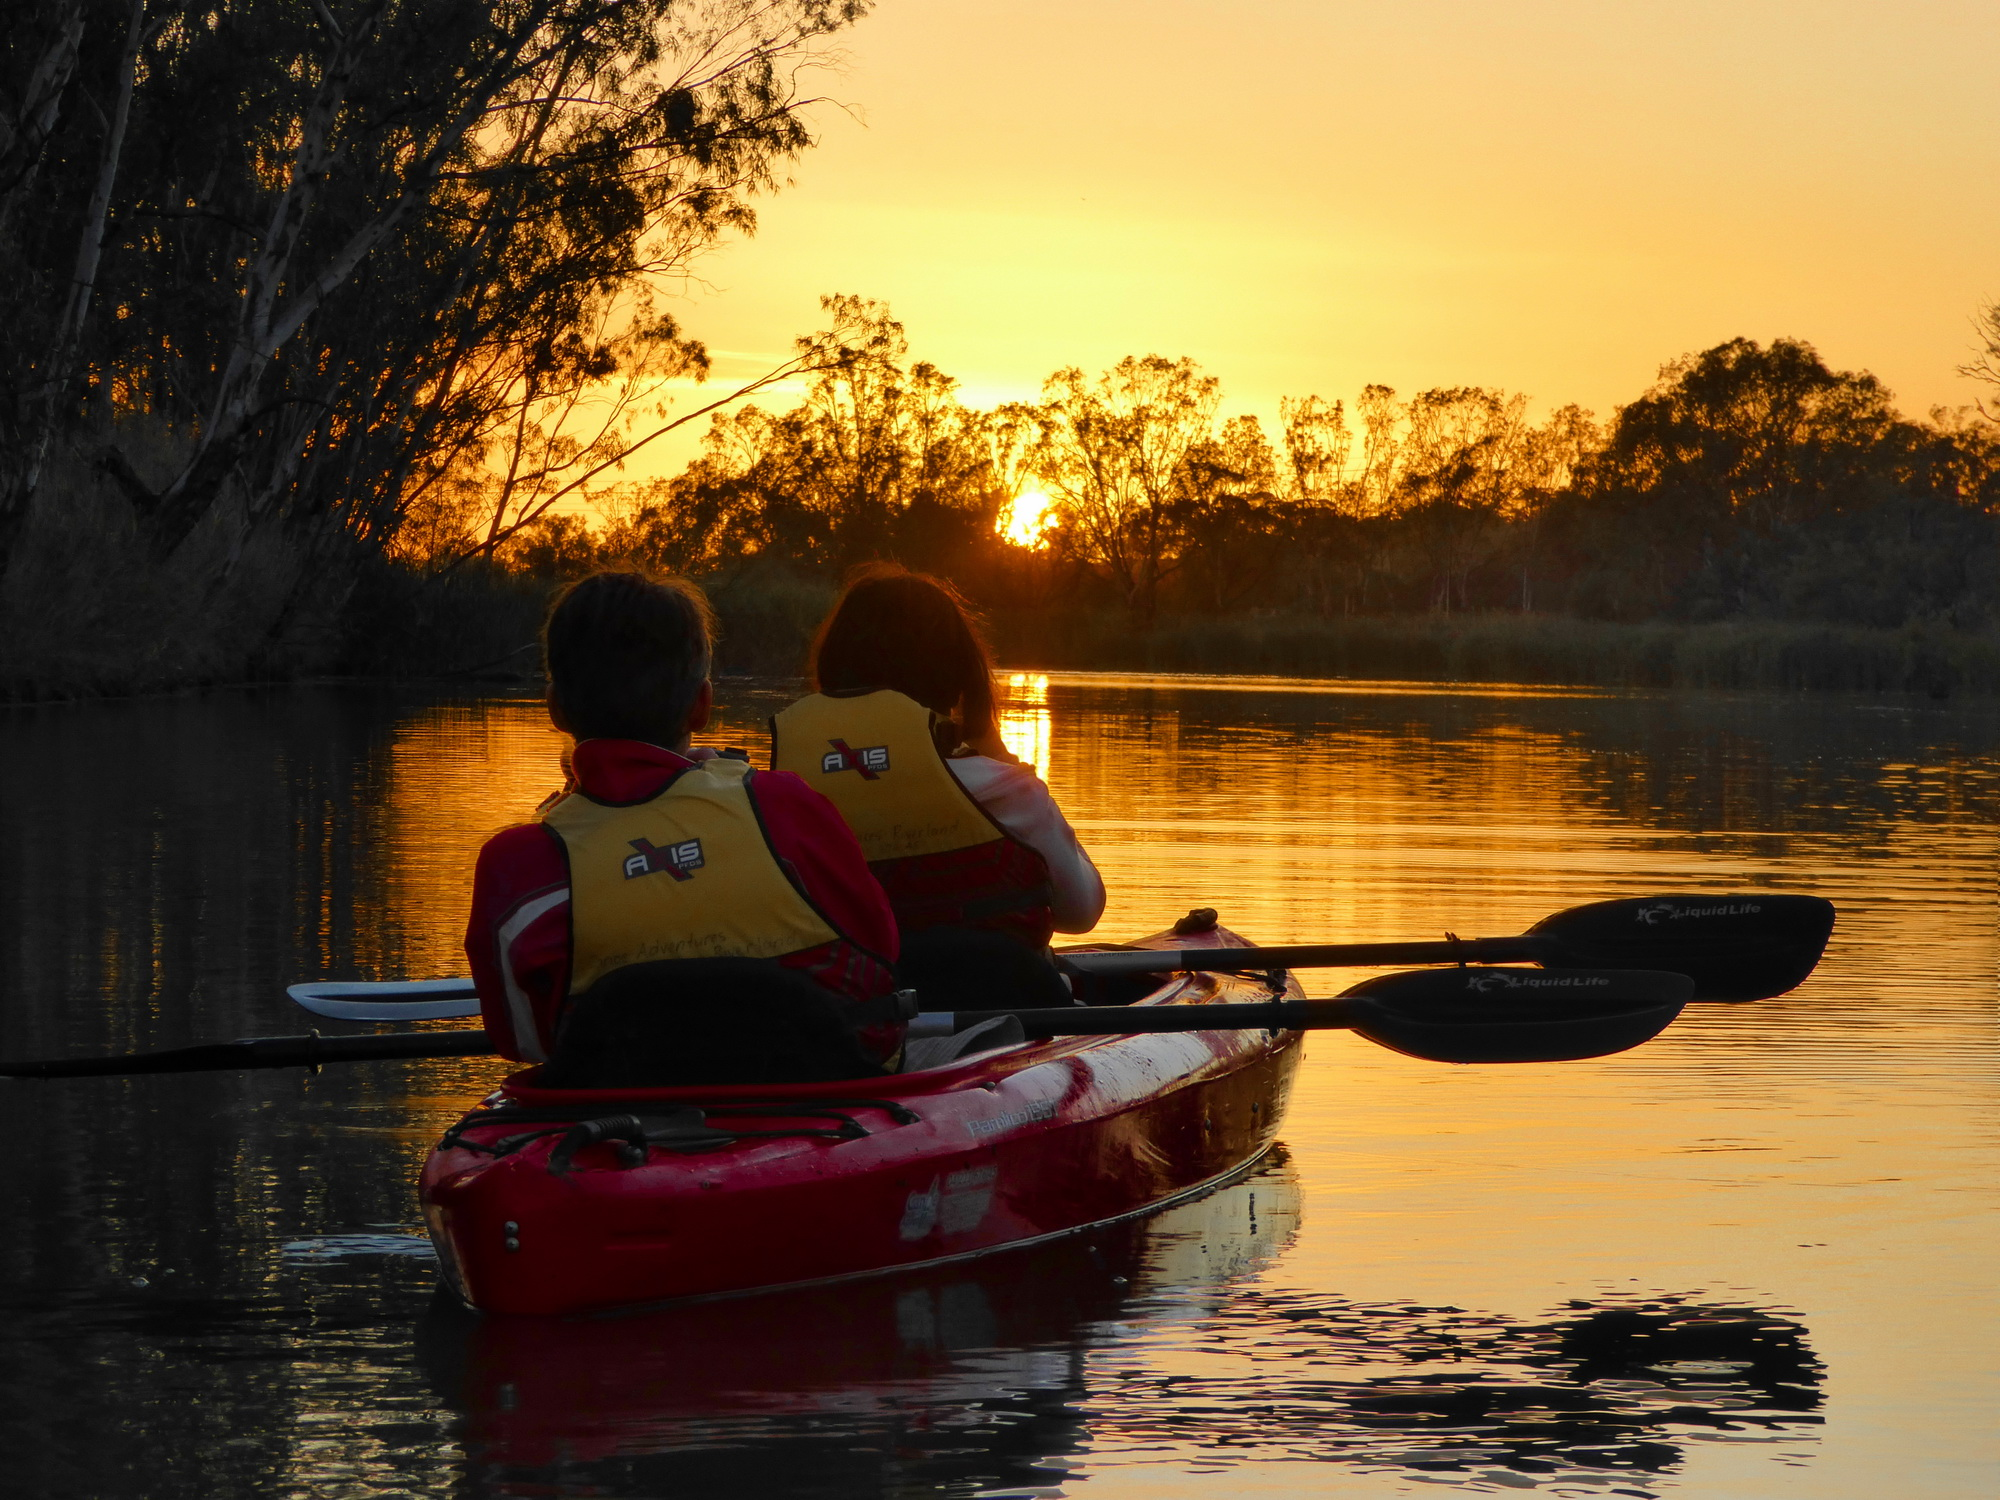 Kayakers enjoying a beautiful sunset.